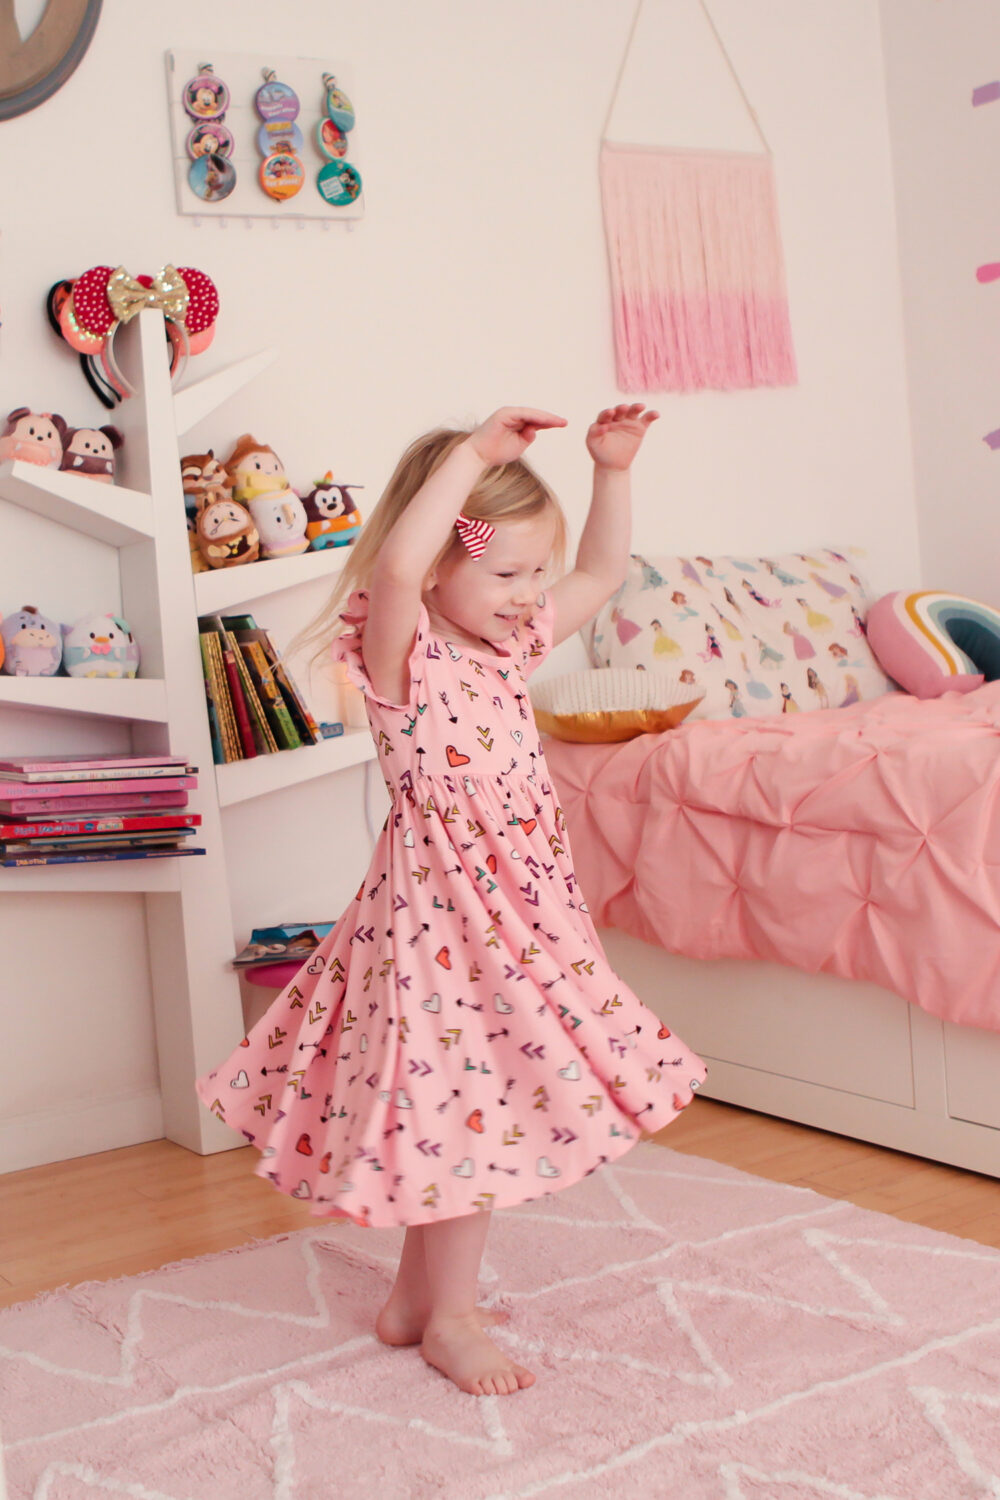 Princess Room: This blush pink rug is perfect for a pink nursery or playroom!